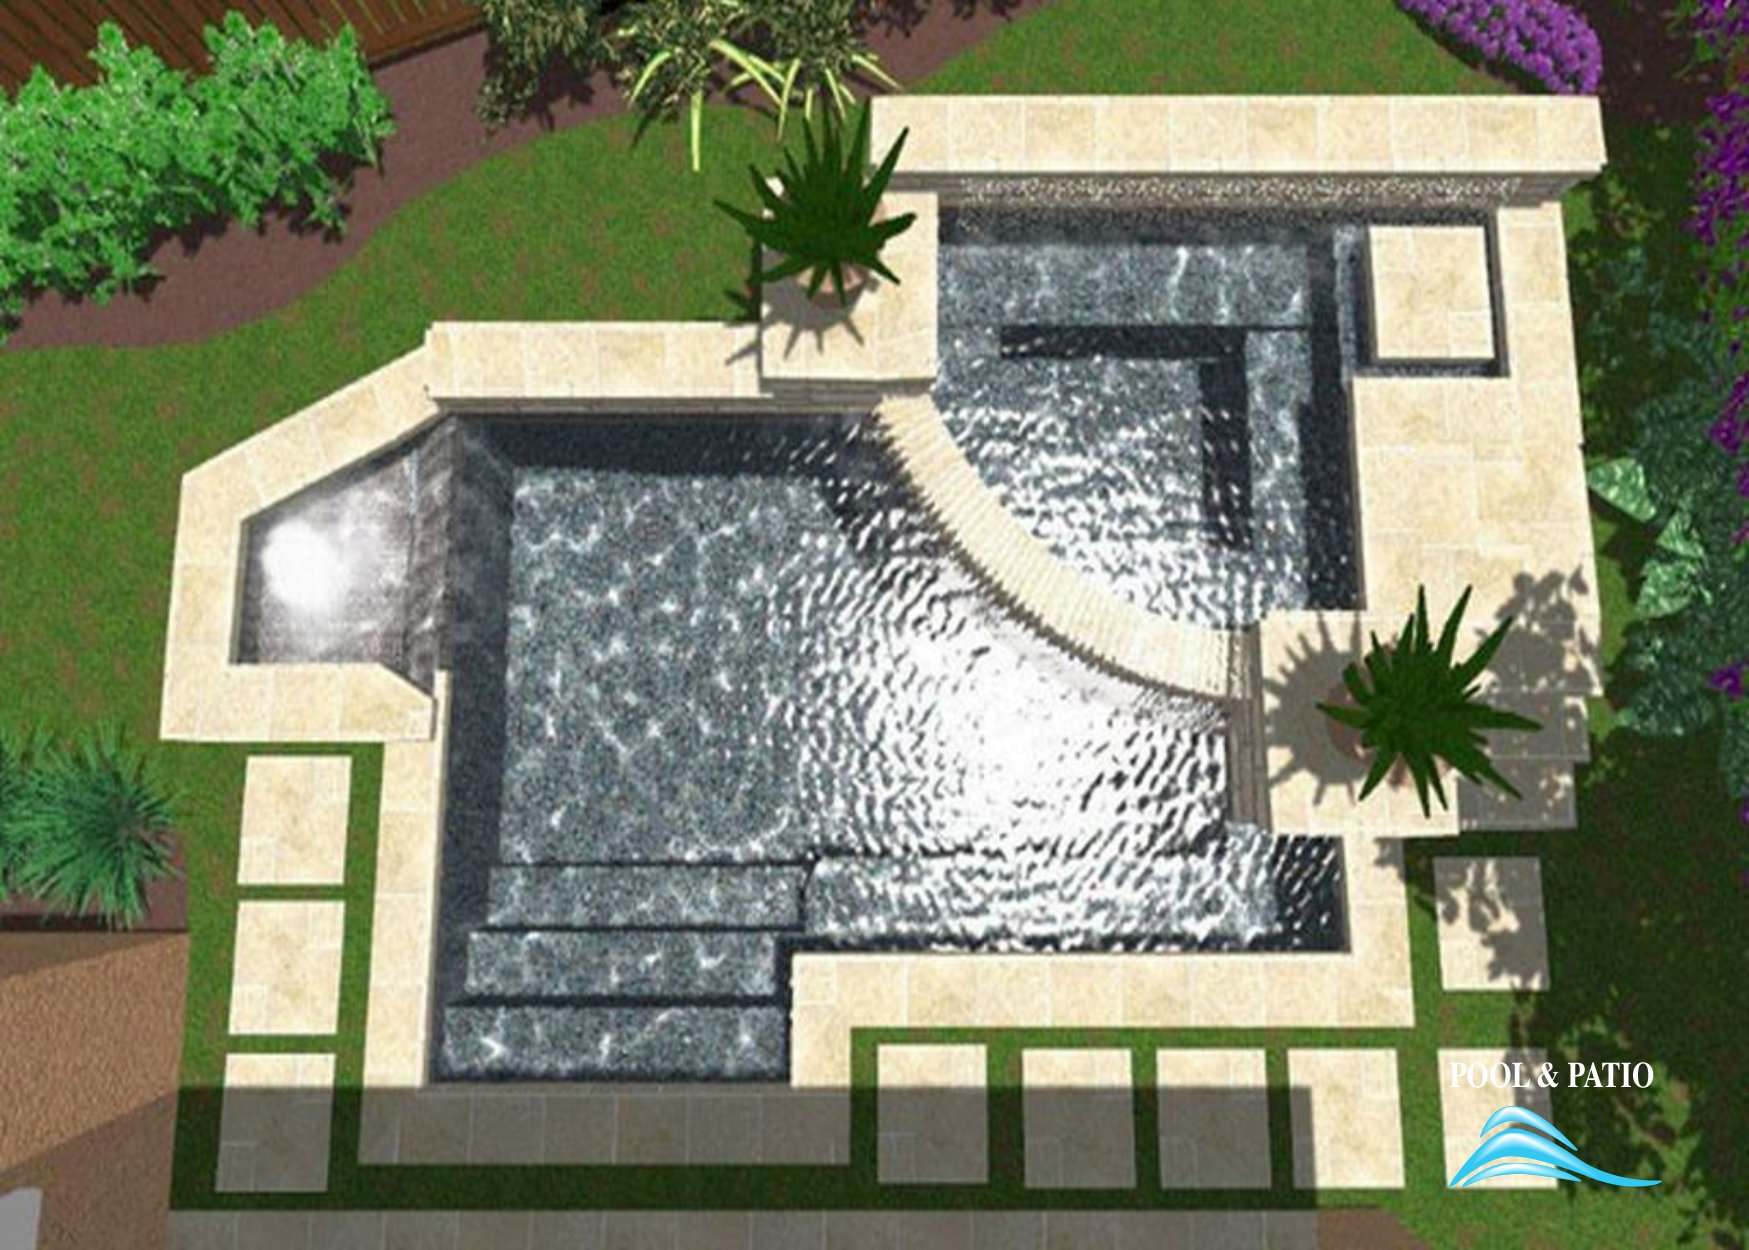 ... Design Service #003 By Pool And Patio ...